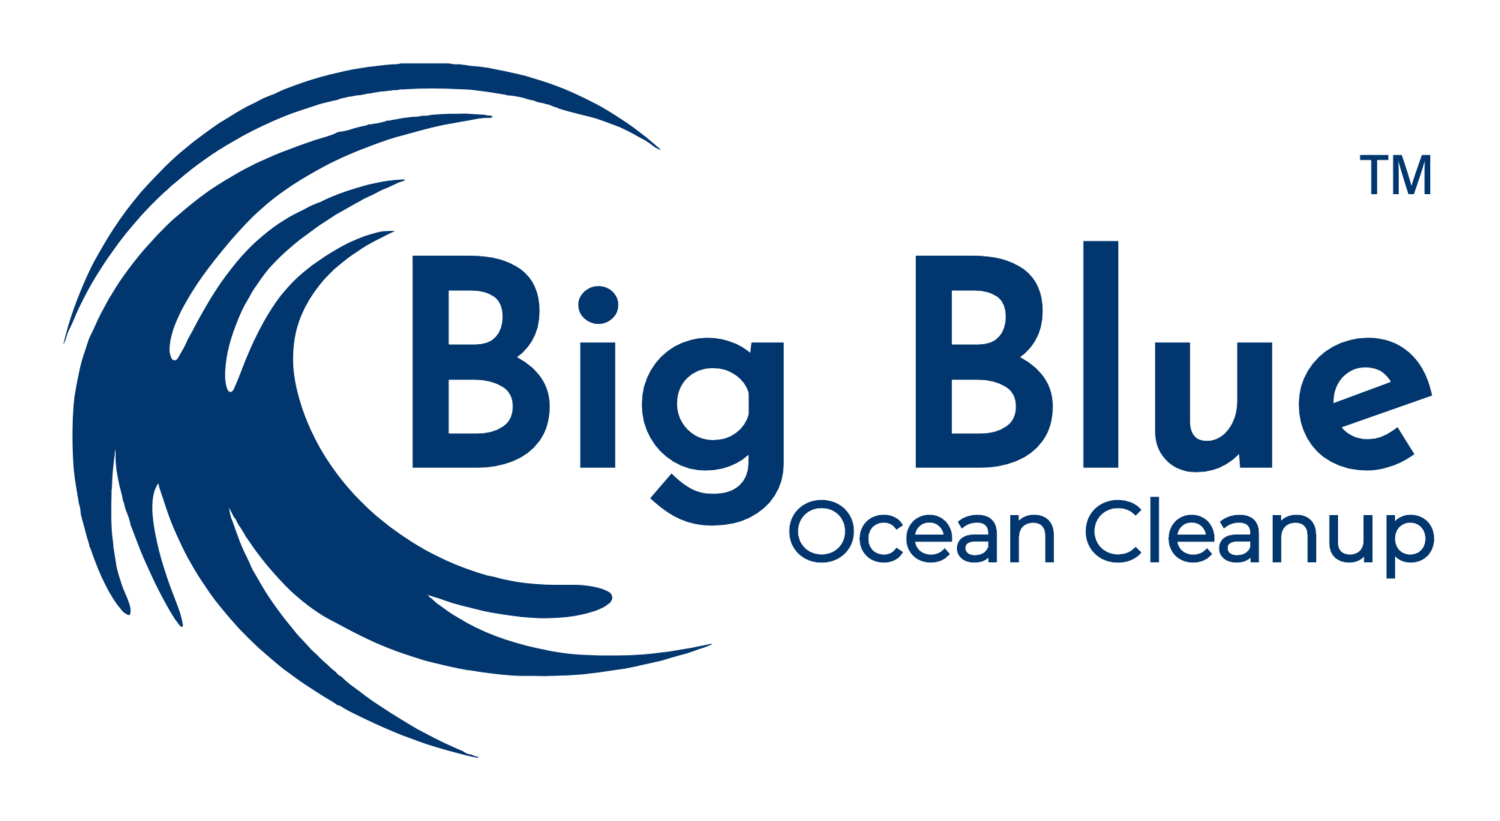 Big Blue Ocean Cleanup | Ocean Cleaning | Ocean Education | Technology Development | Scientific Research